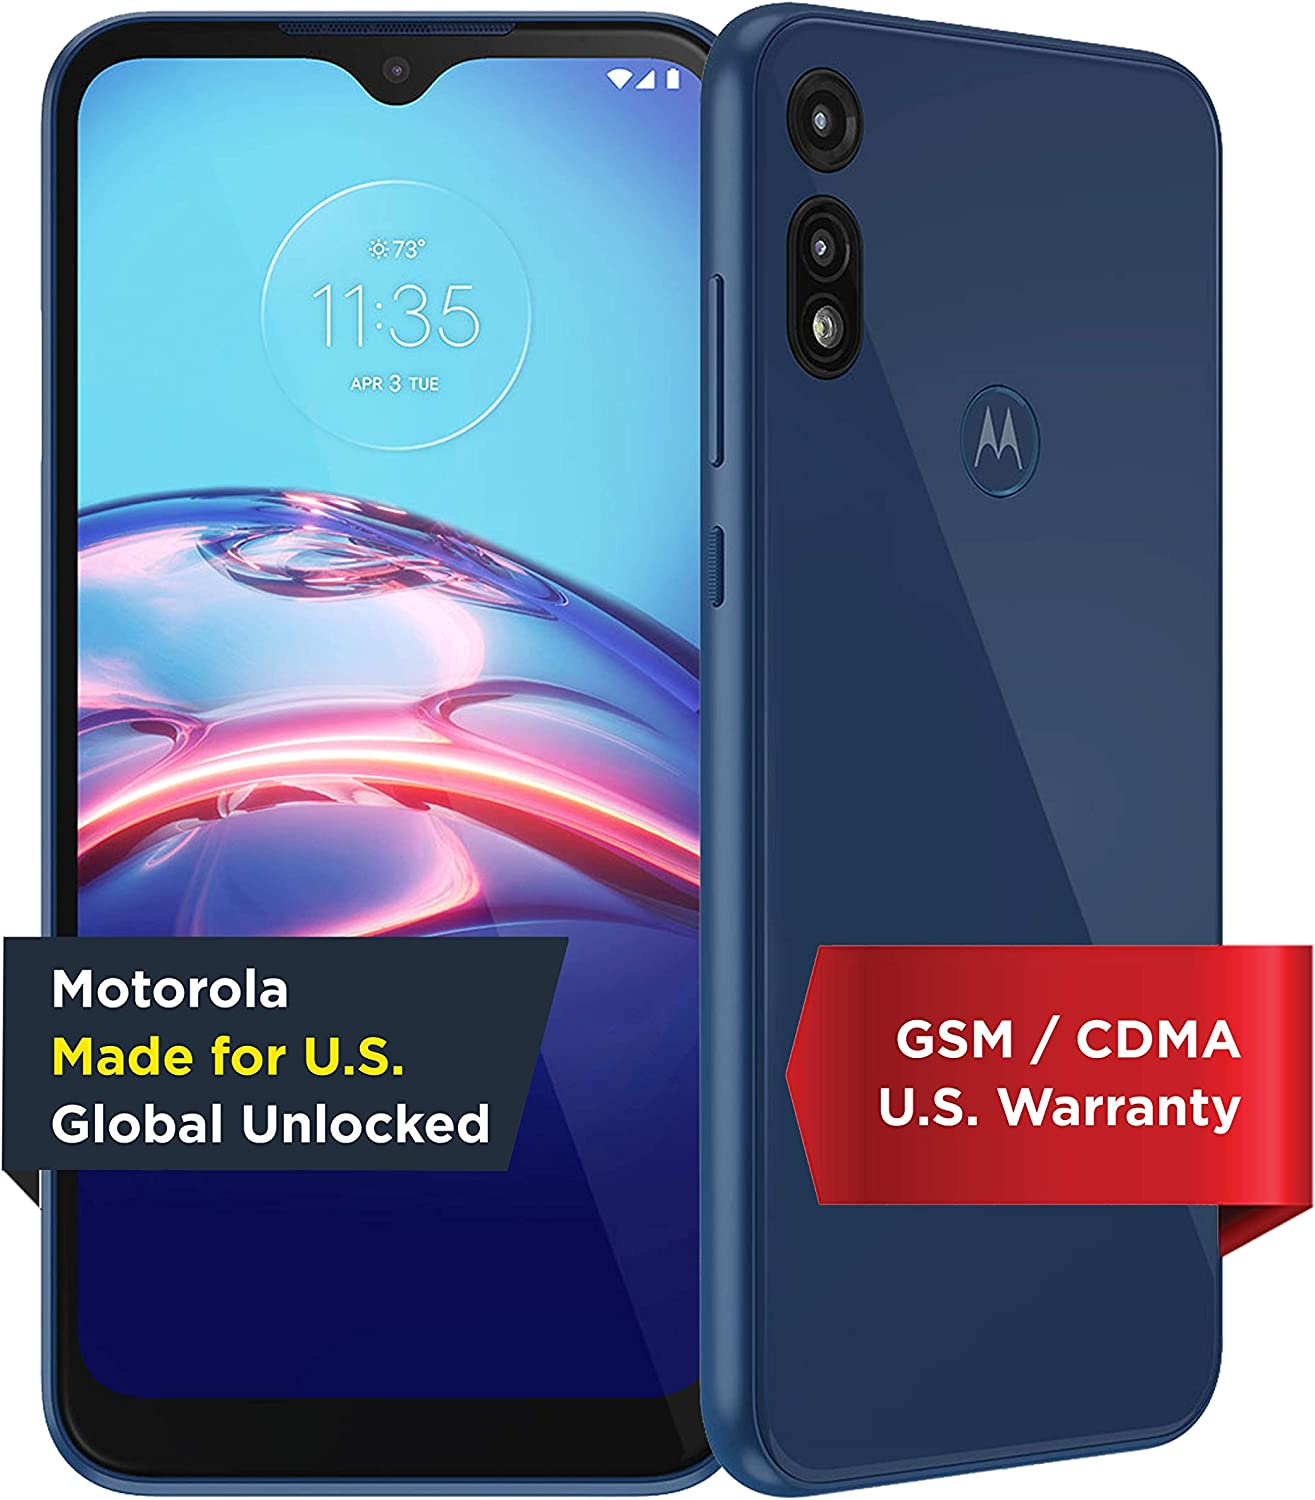 Moto E | Unlocked | Made for US by Motorola | 2/32GB | 13MP Camera | 2020 | Blue, XT2052-1, 2/32 GB | Moto E | 13MP Camera | Blue | US